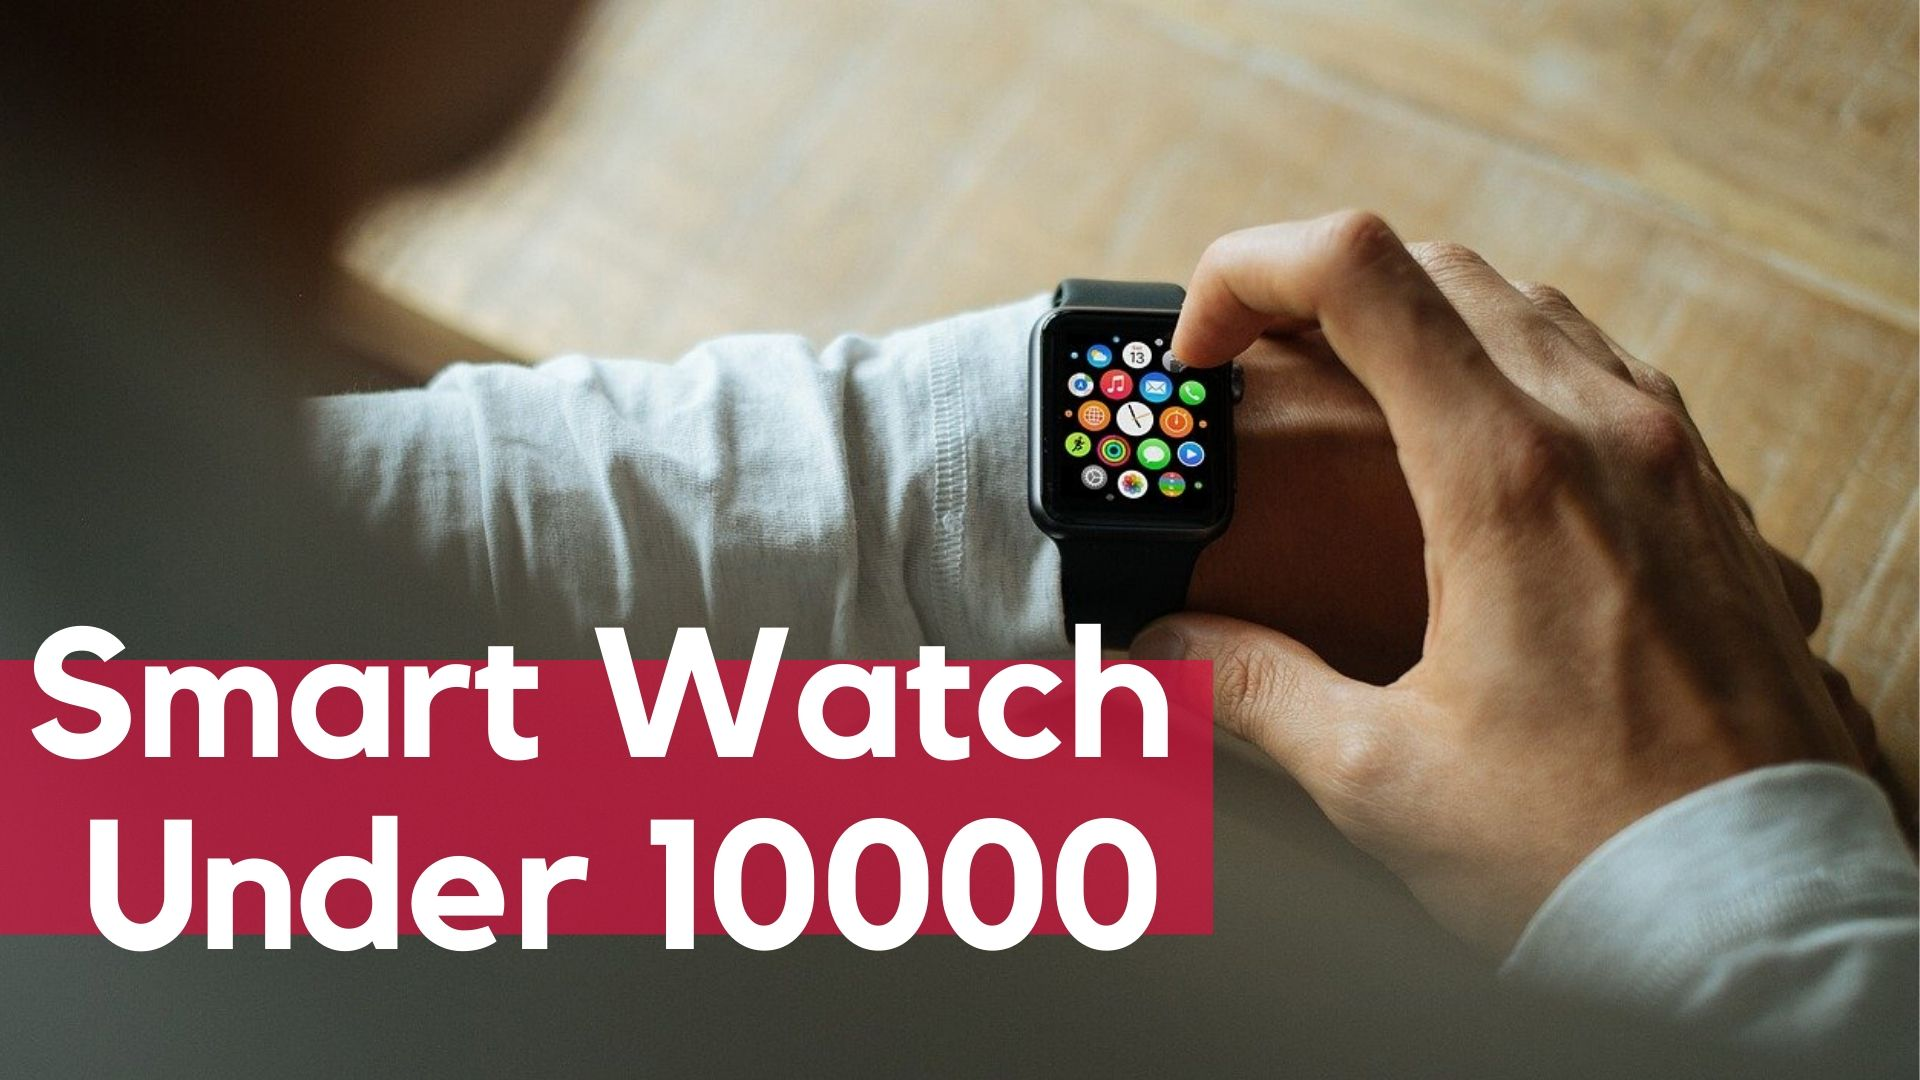 Smart Watch: best smartwatches under 10000 rupees